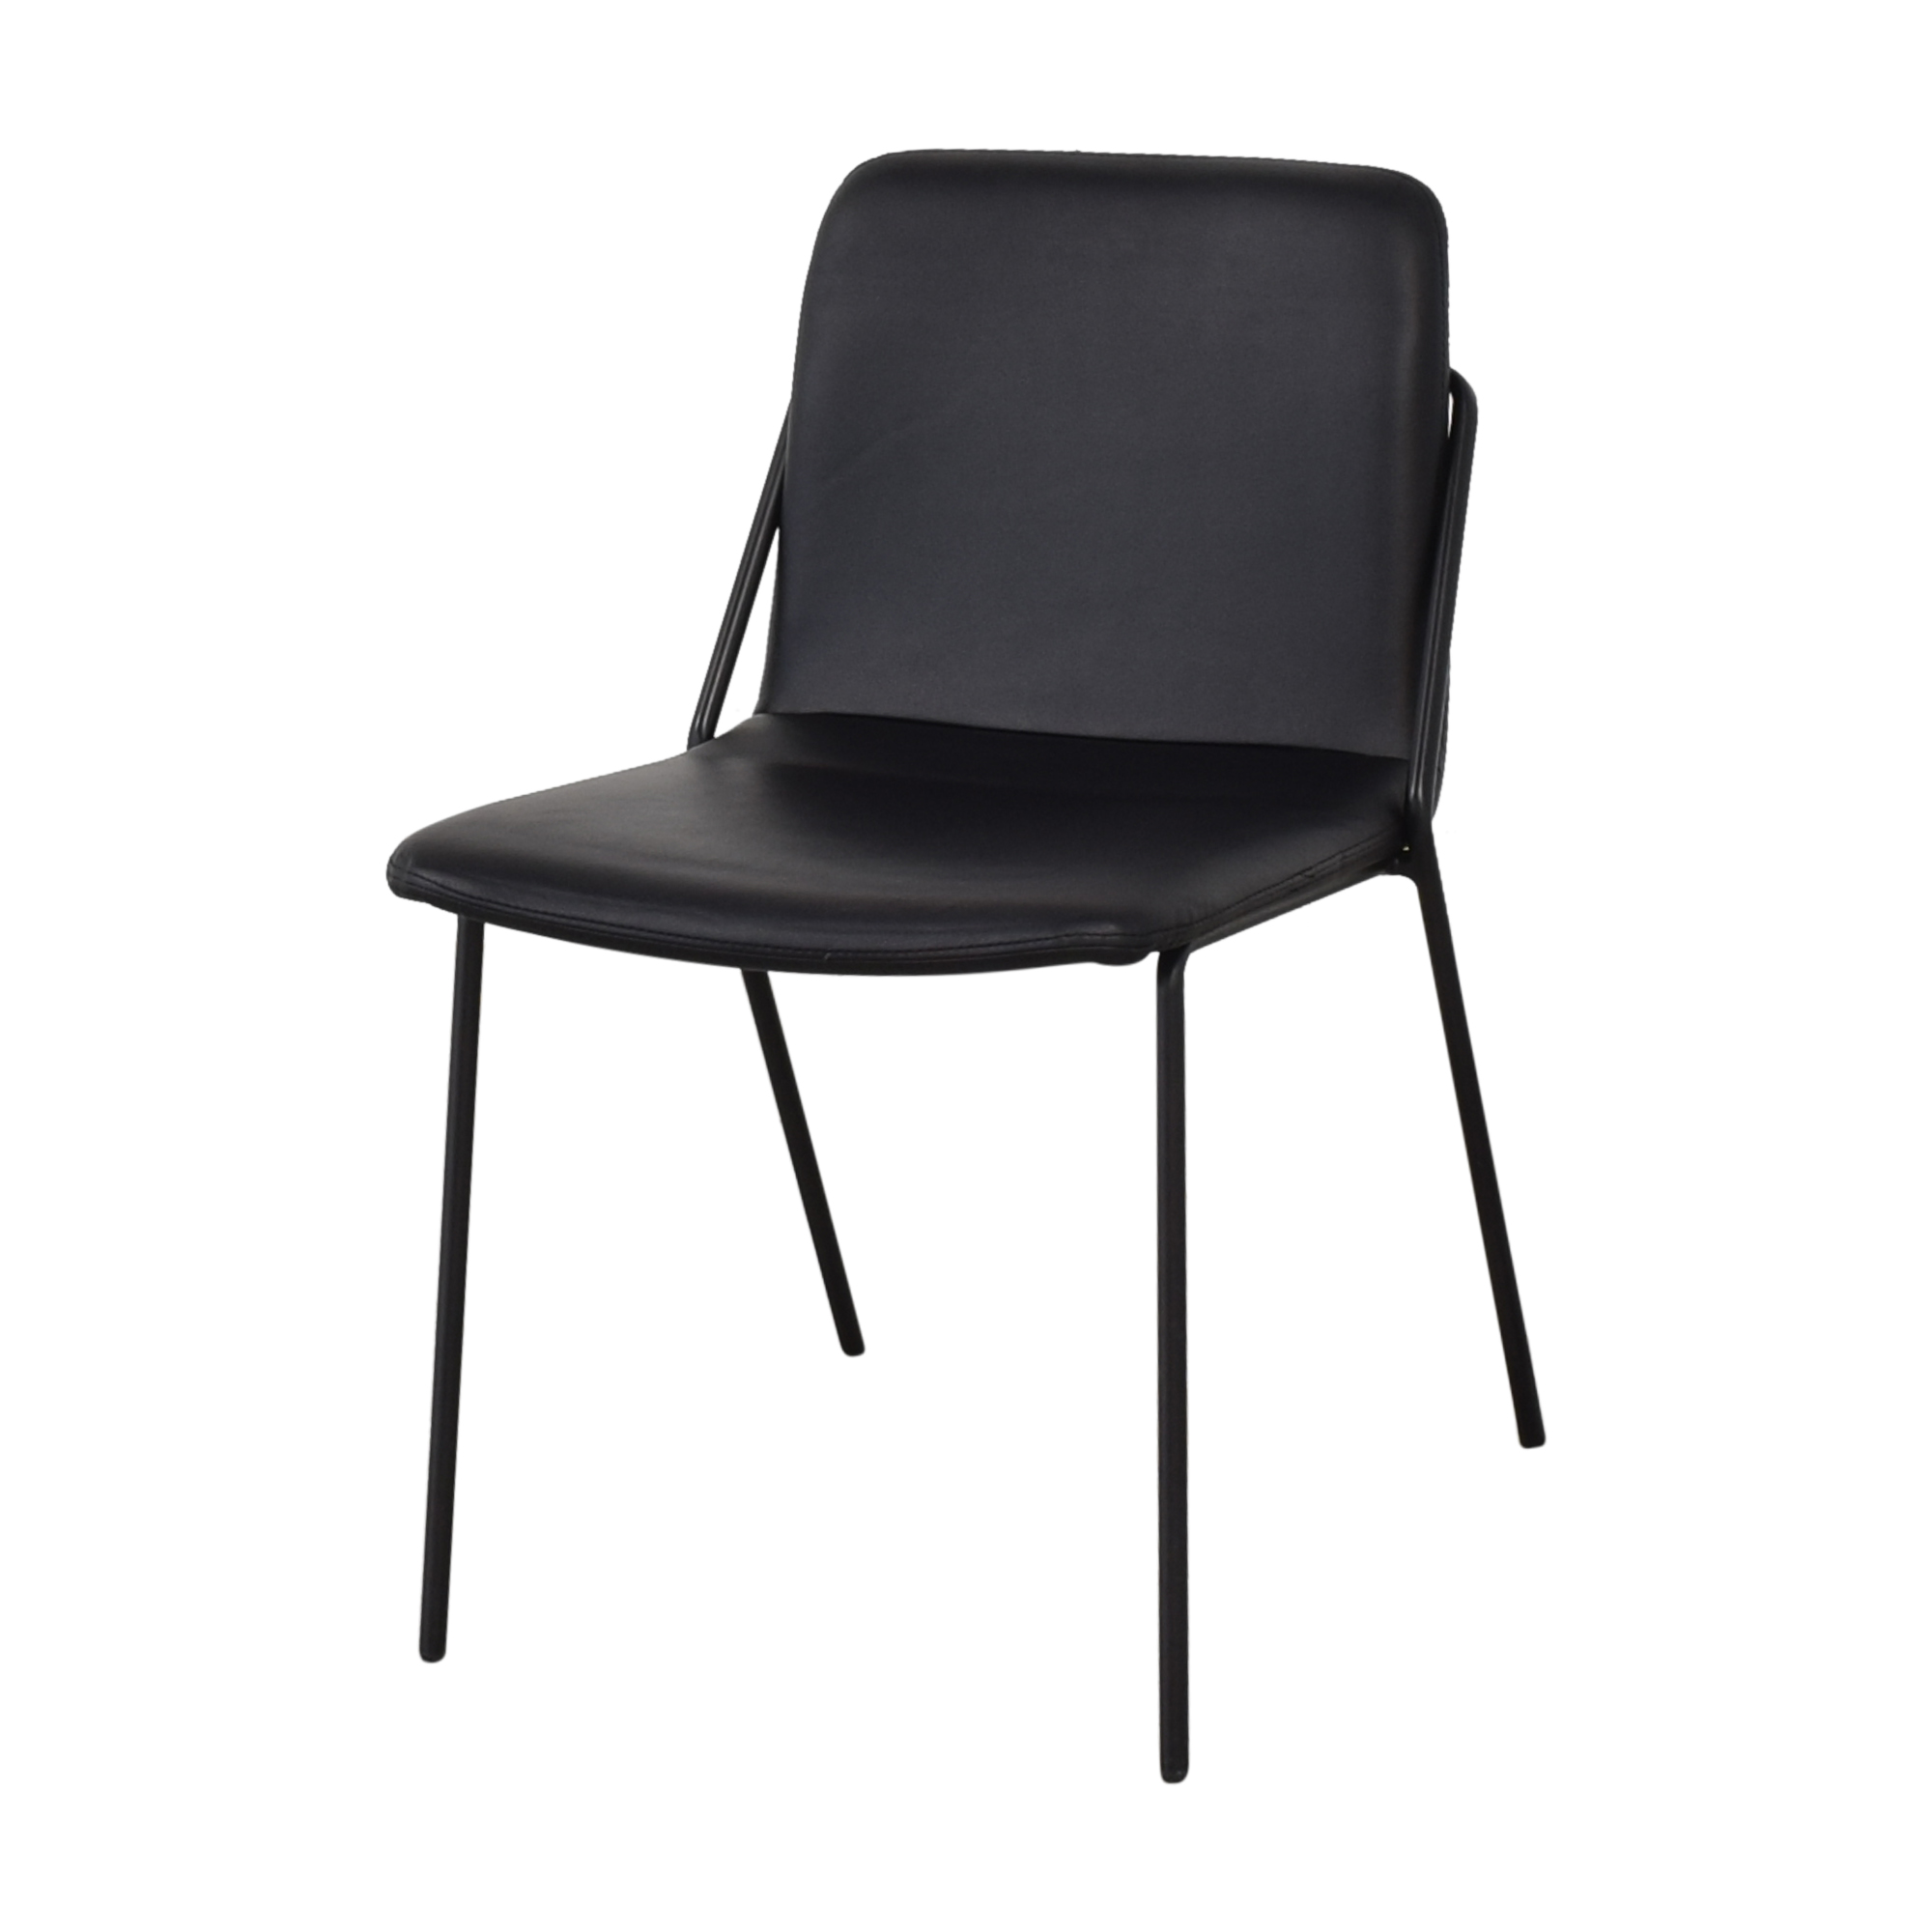 shop m.a.d. Sling Upholstered Leather Chairs m.a.d.